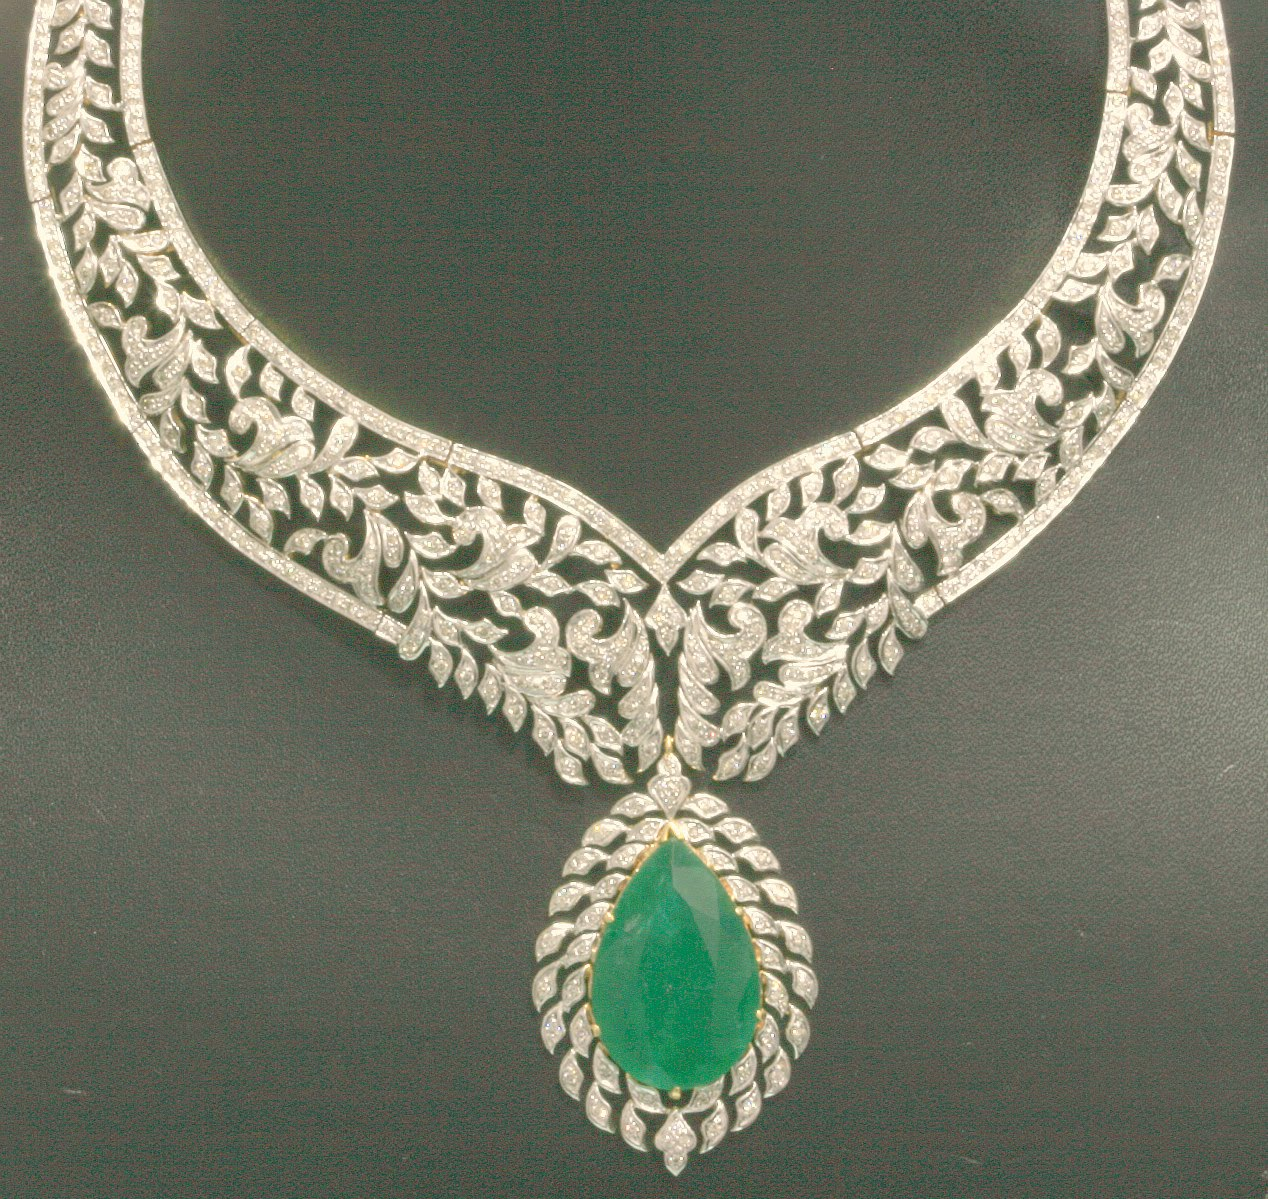 emerald necklace - Jewelry Photo (30684431) - Fanpop